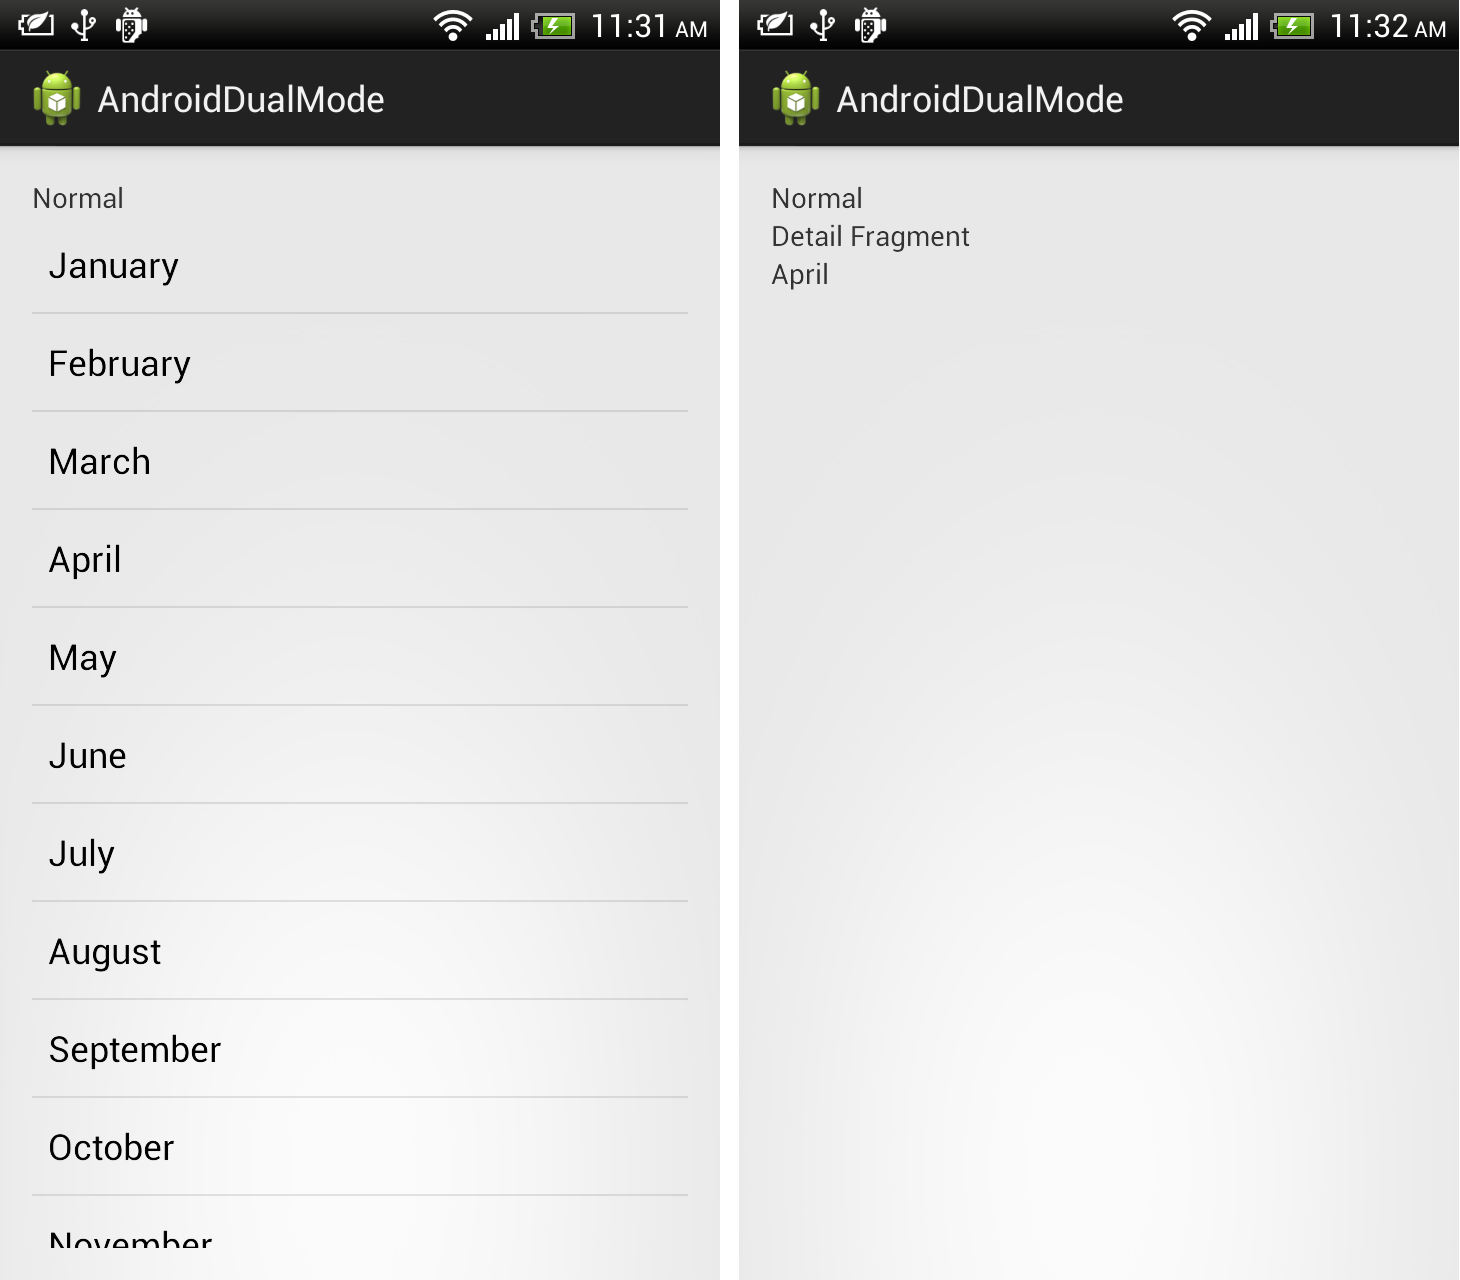 Android-er: Handle onListItemClick() of ListFragment, to pass data